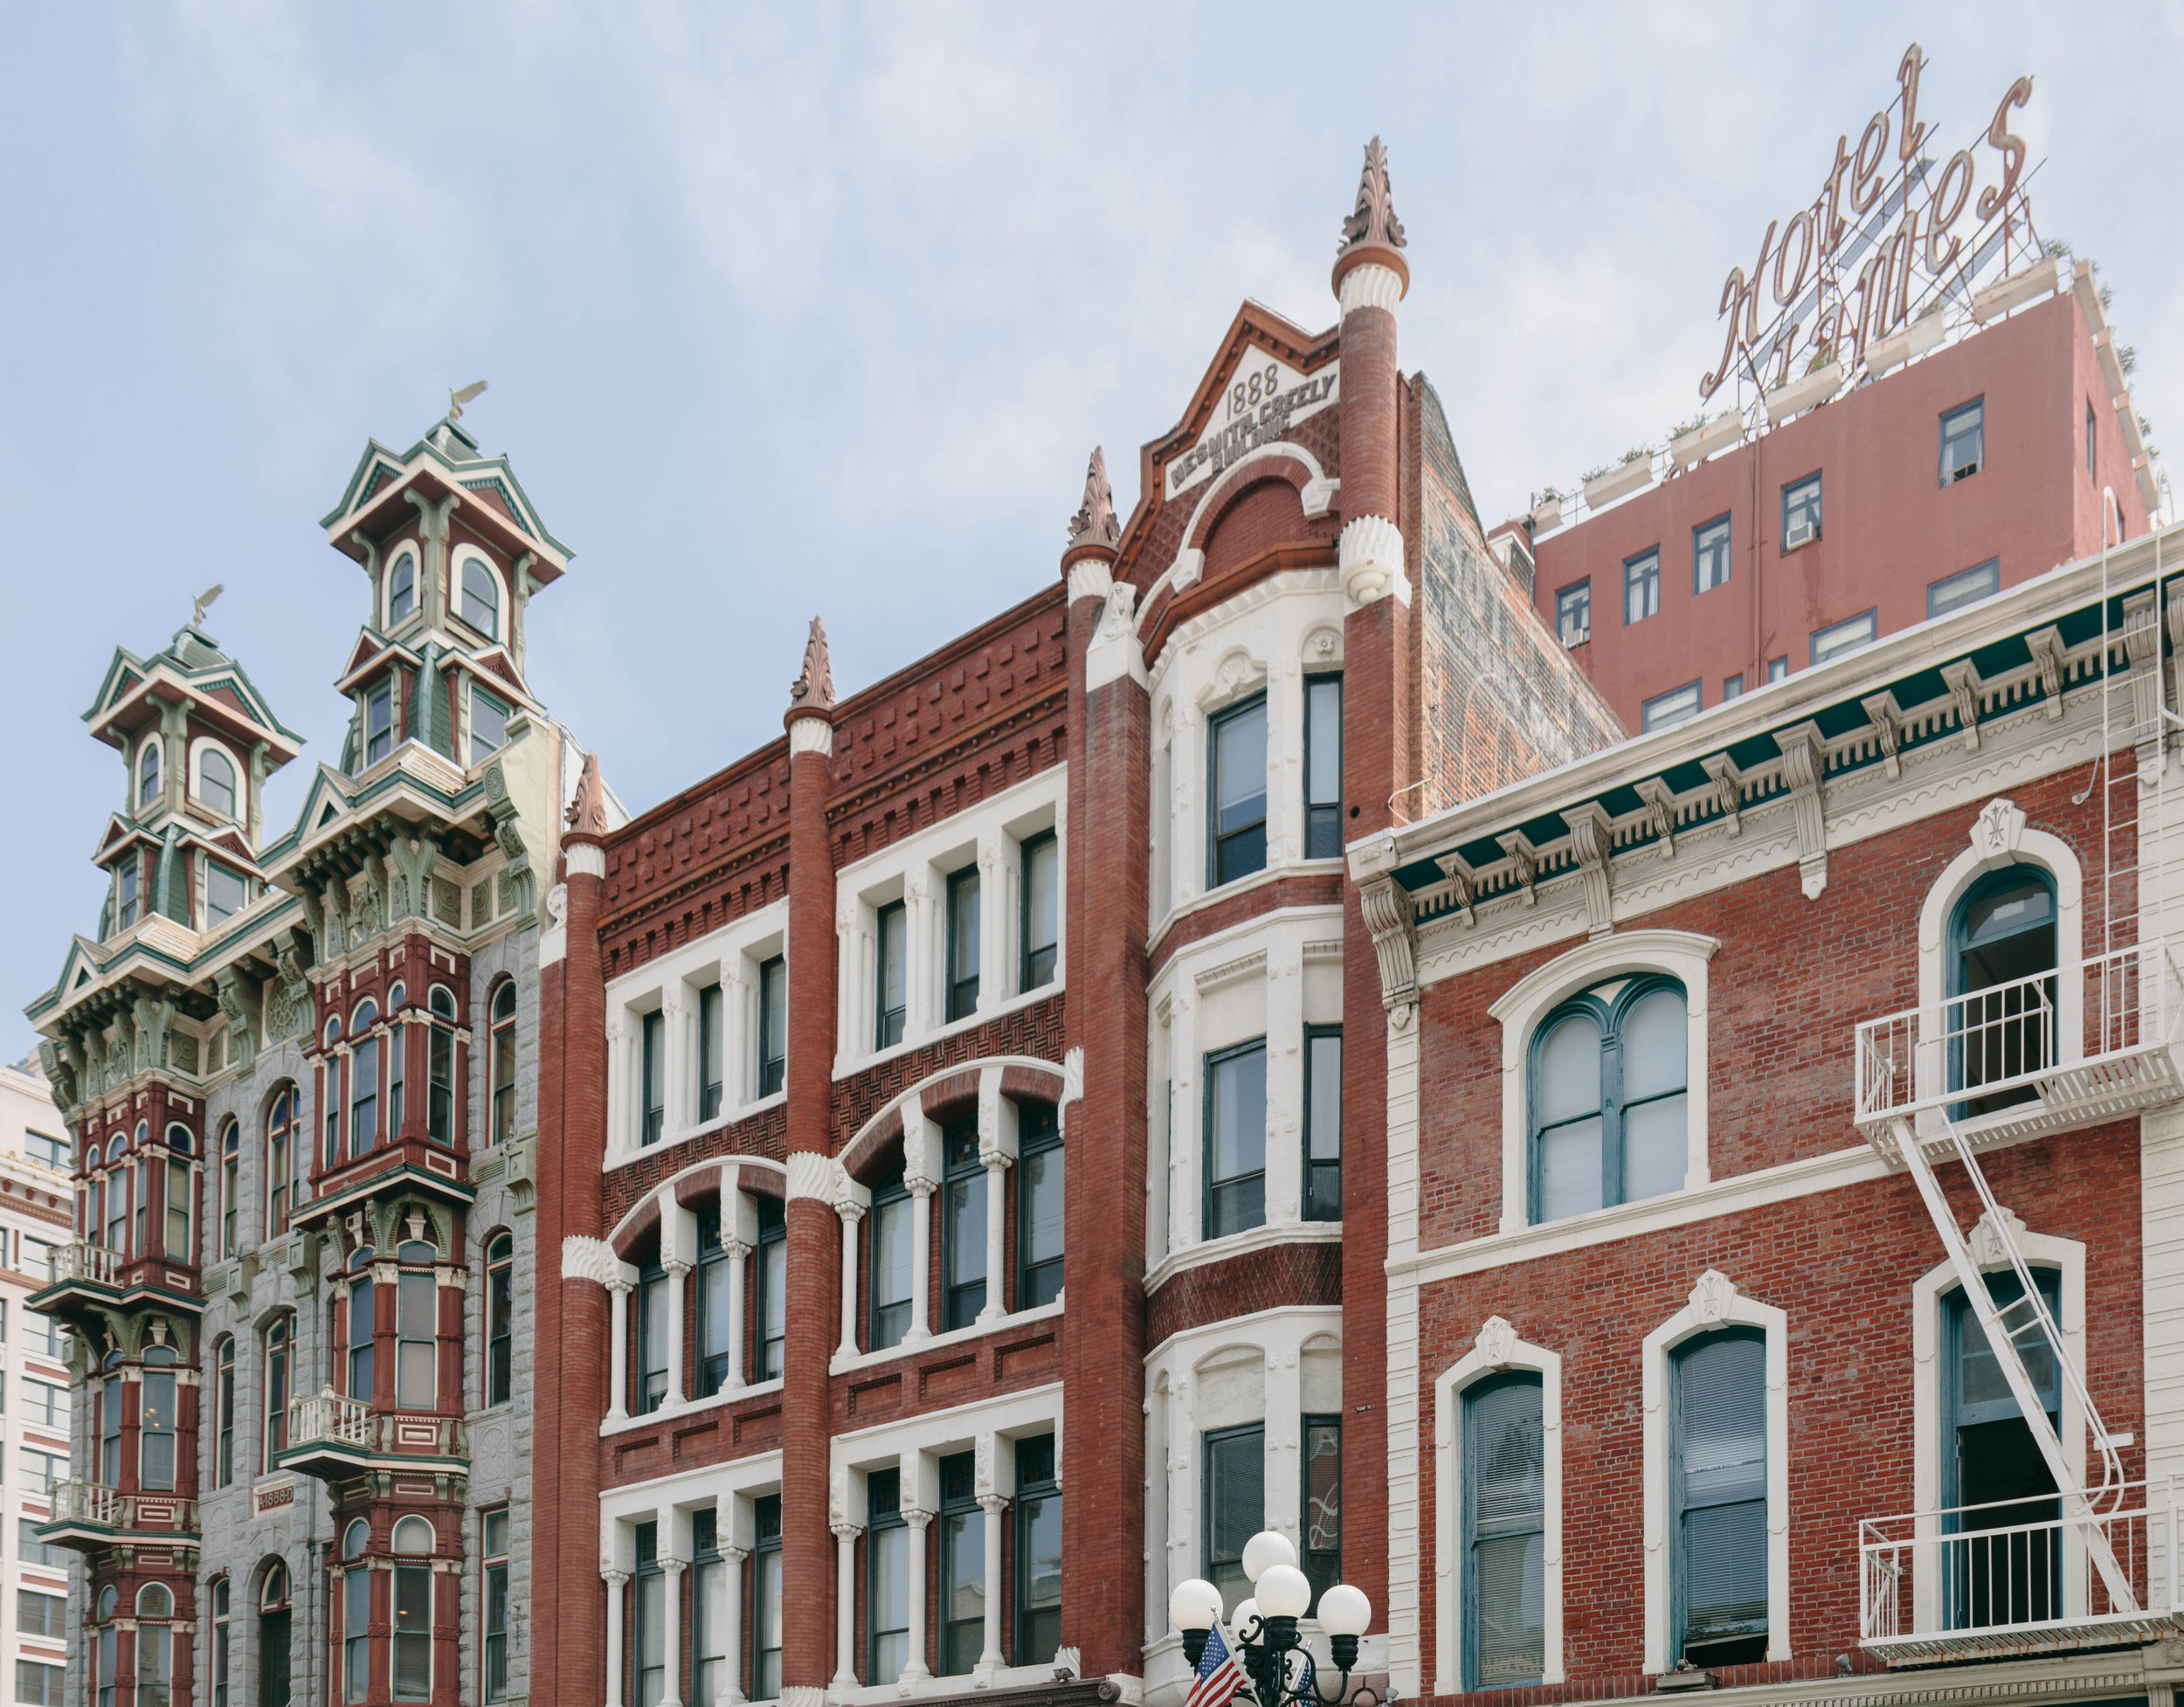 Left: Louis Bank of Commerce in the Baroque Revival Style (1888), which once housed an oyster bar frequented by Wyatt Earp. Right:  NeSmith-Greeley Building in the Romanesque Revival Style (1888).  The sign for the historic Hotel St. James (1913) can be seen in the background.